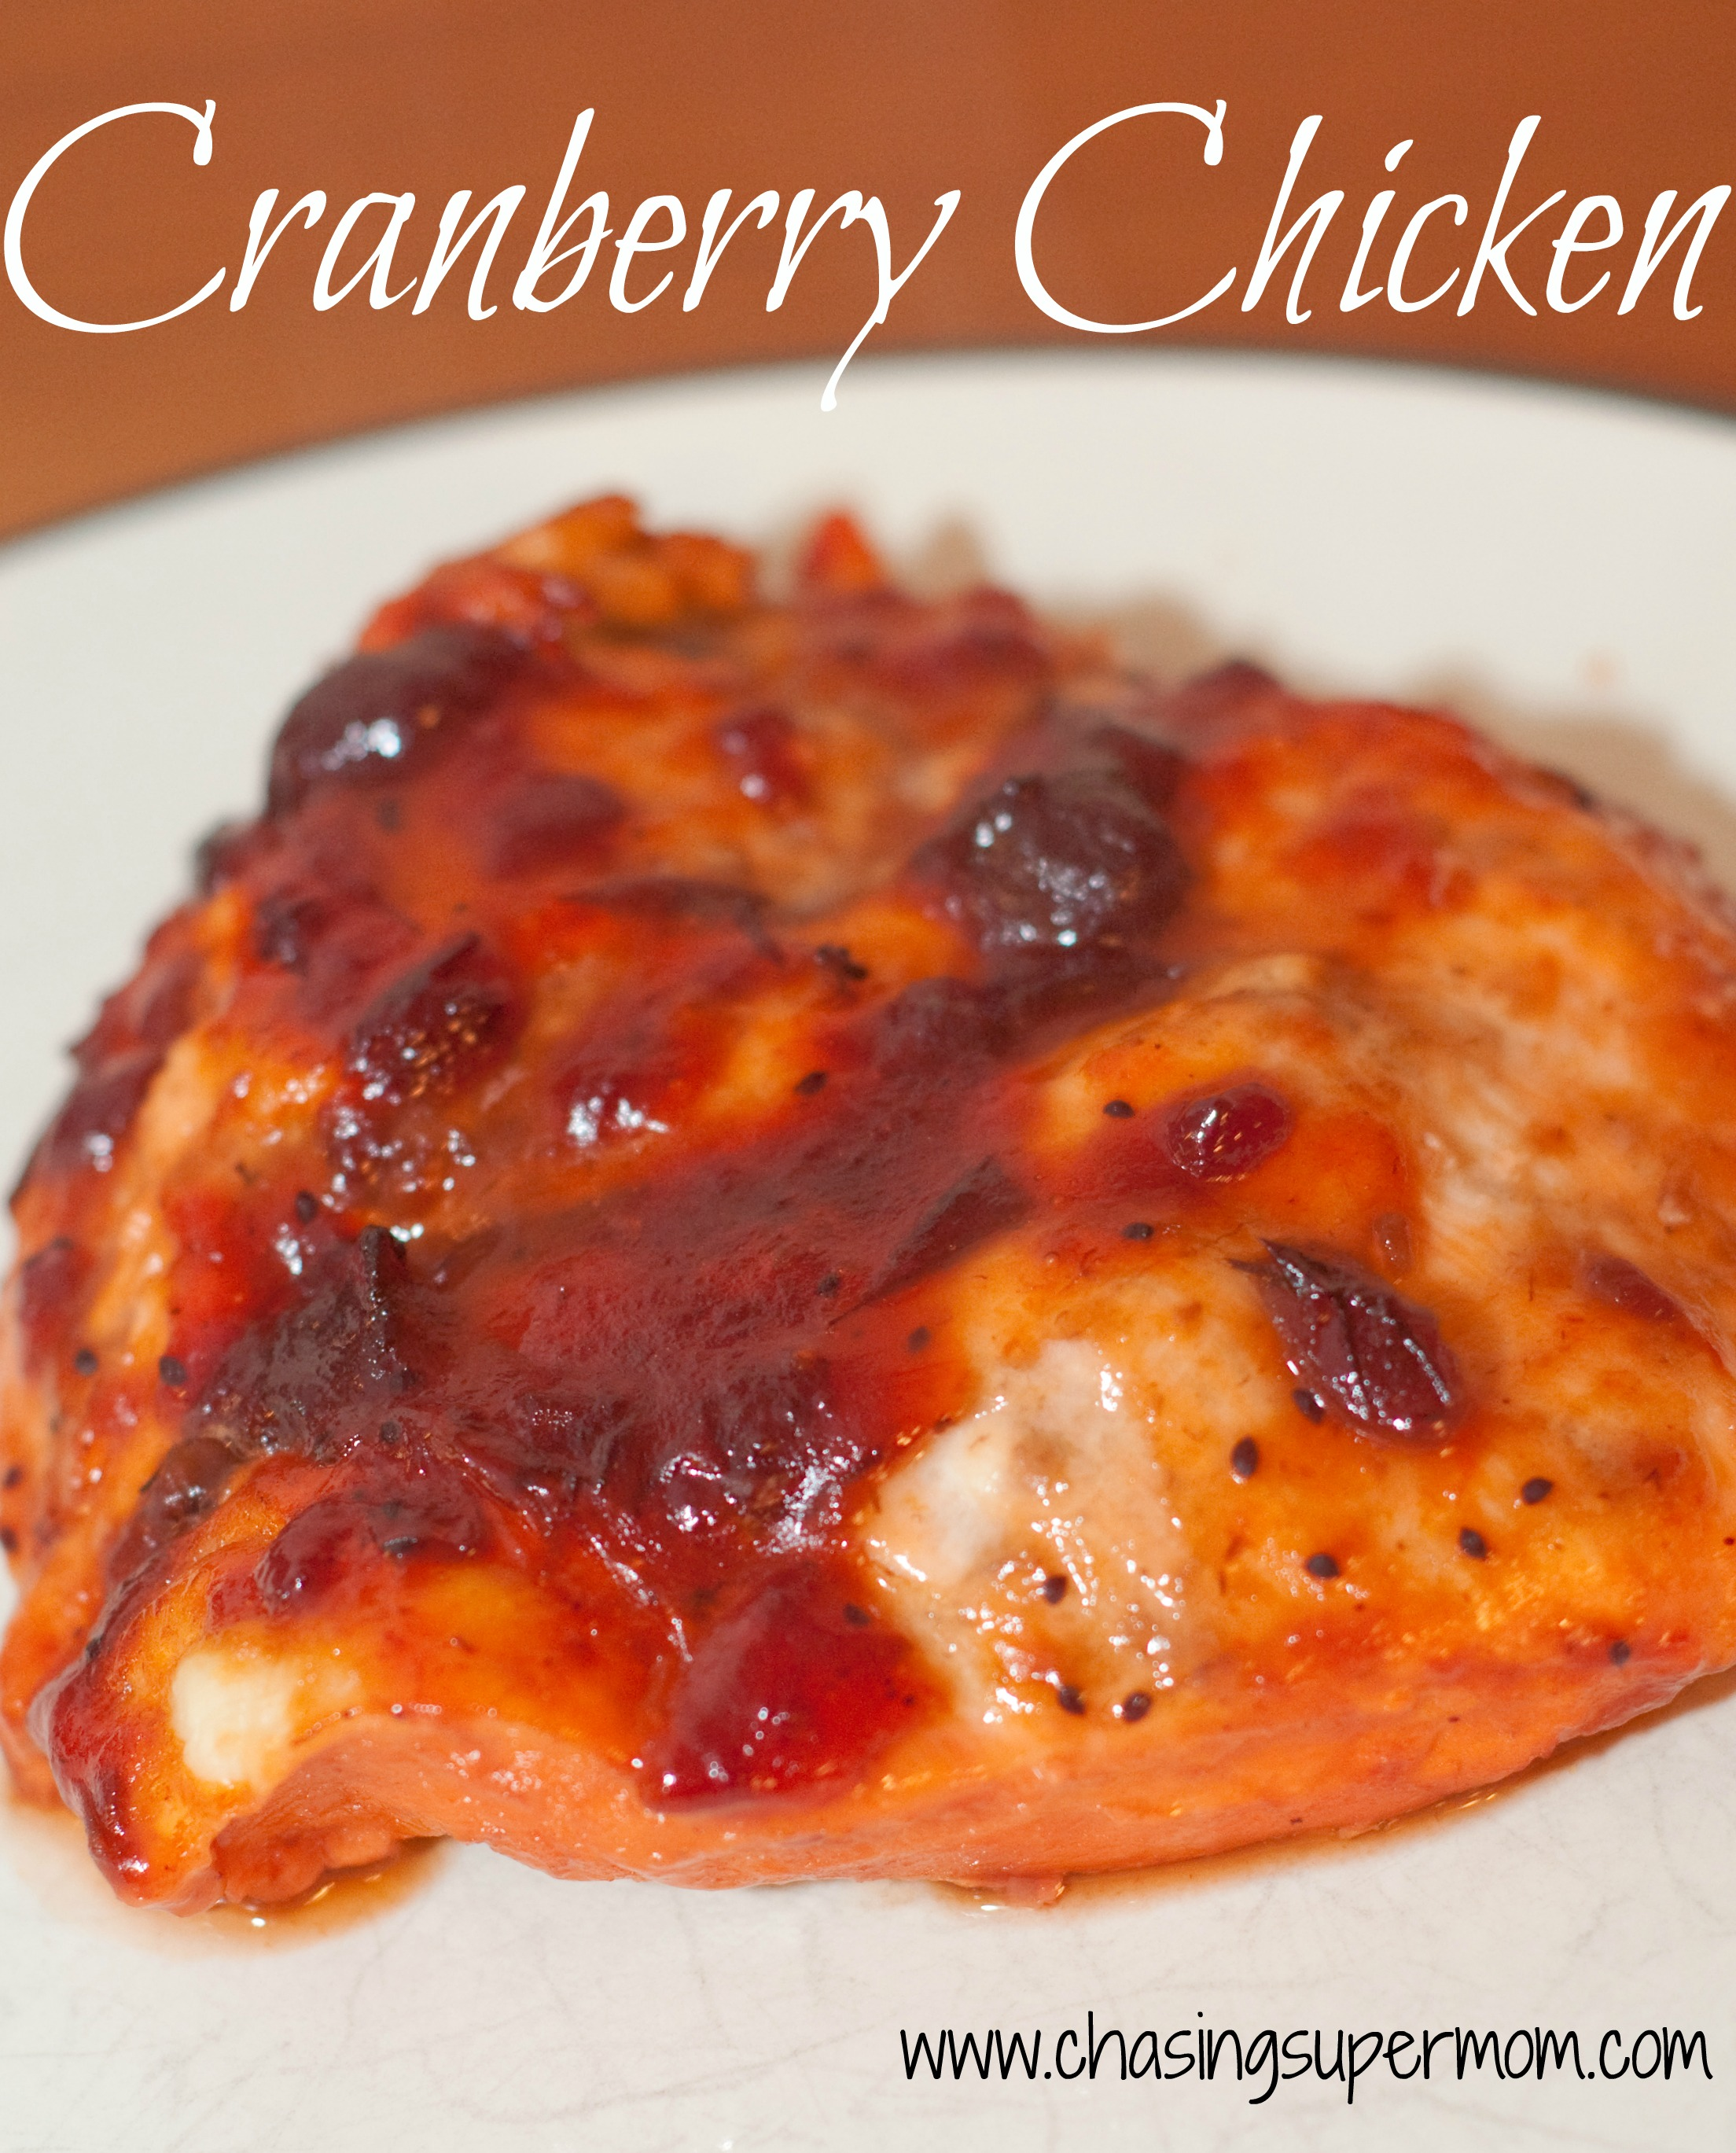 Cranberry Chicken : Easy Weeknight Chicken Recipe